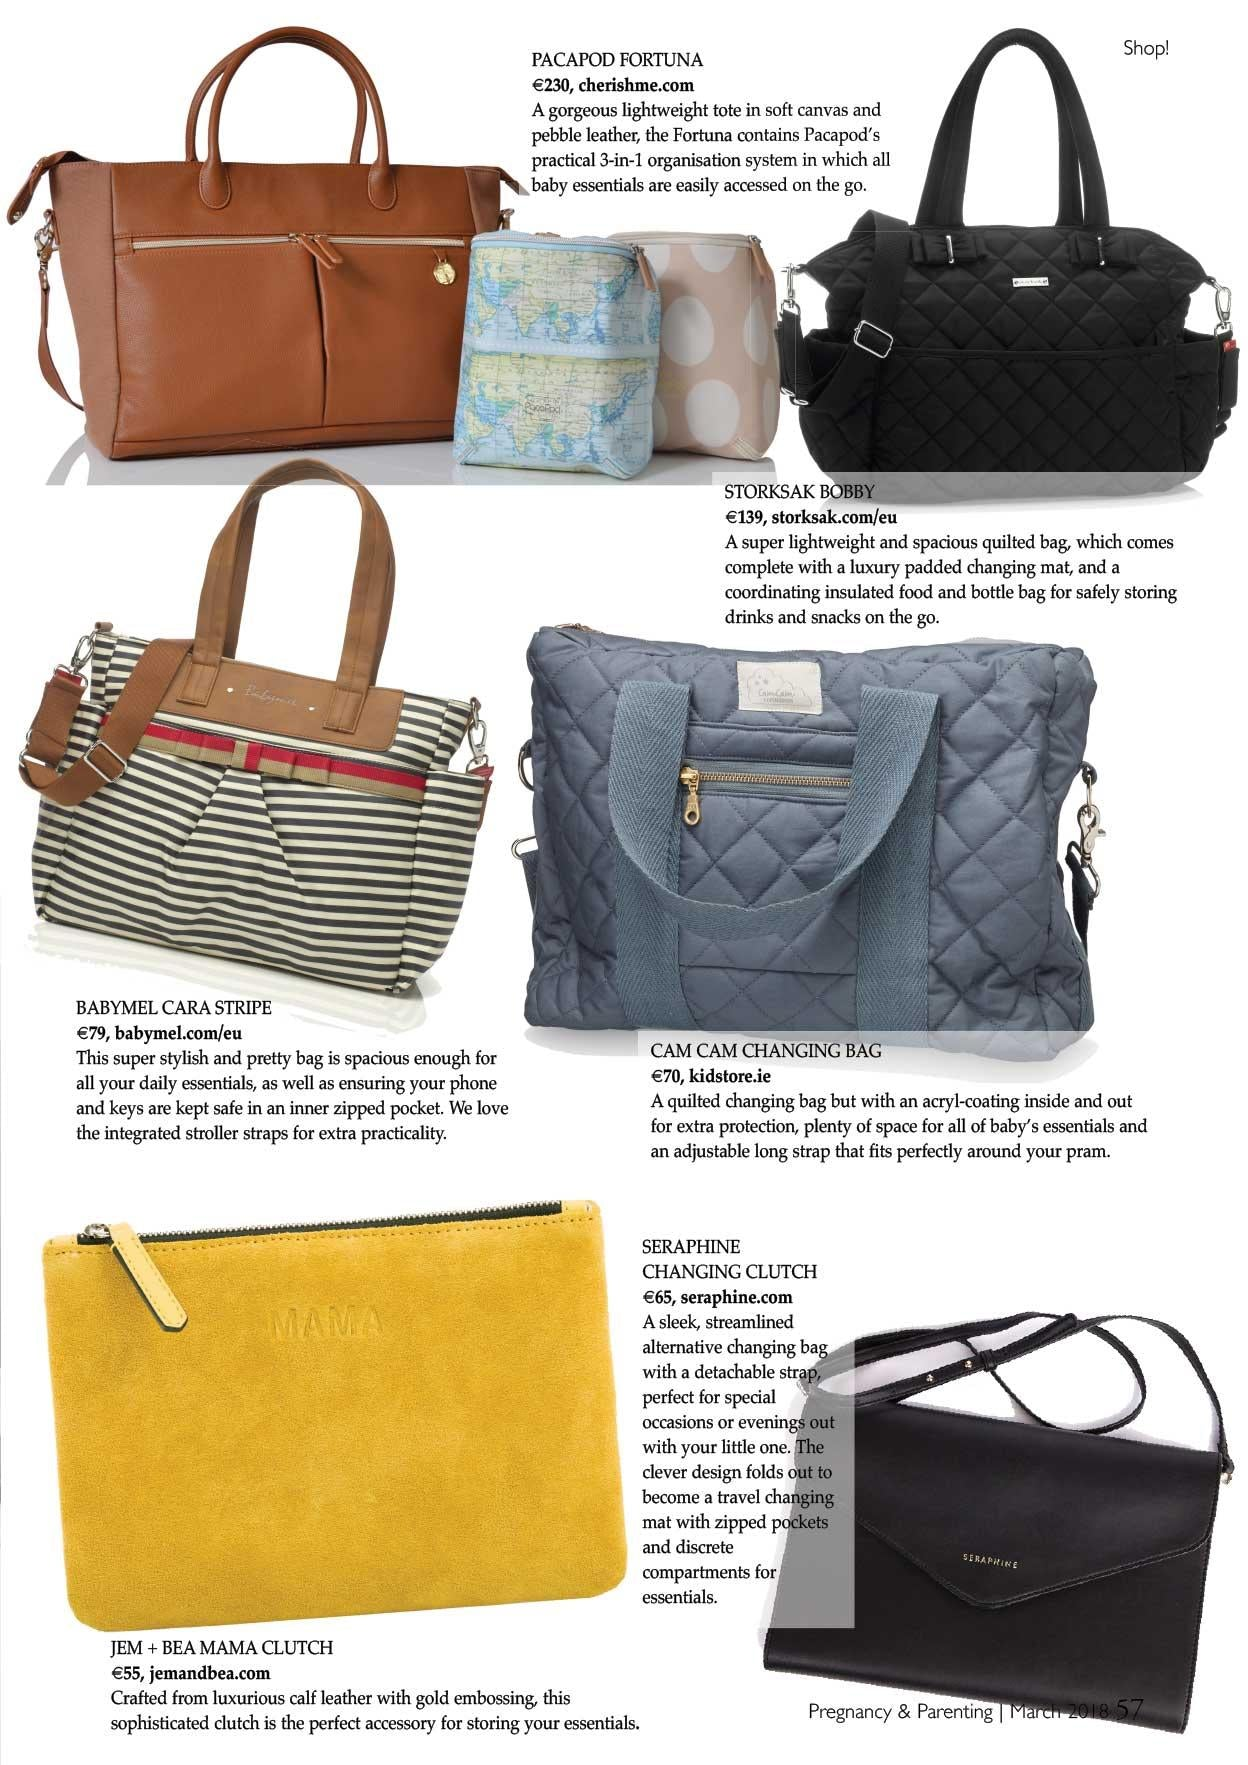 Fortuna Bag features in Pregnancy & Parenting Magazine